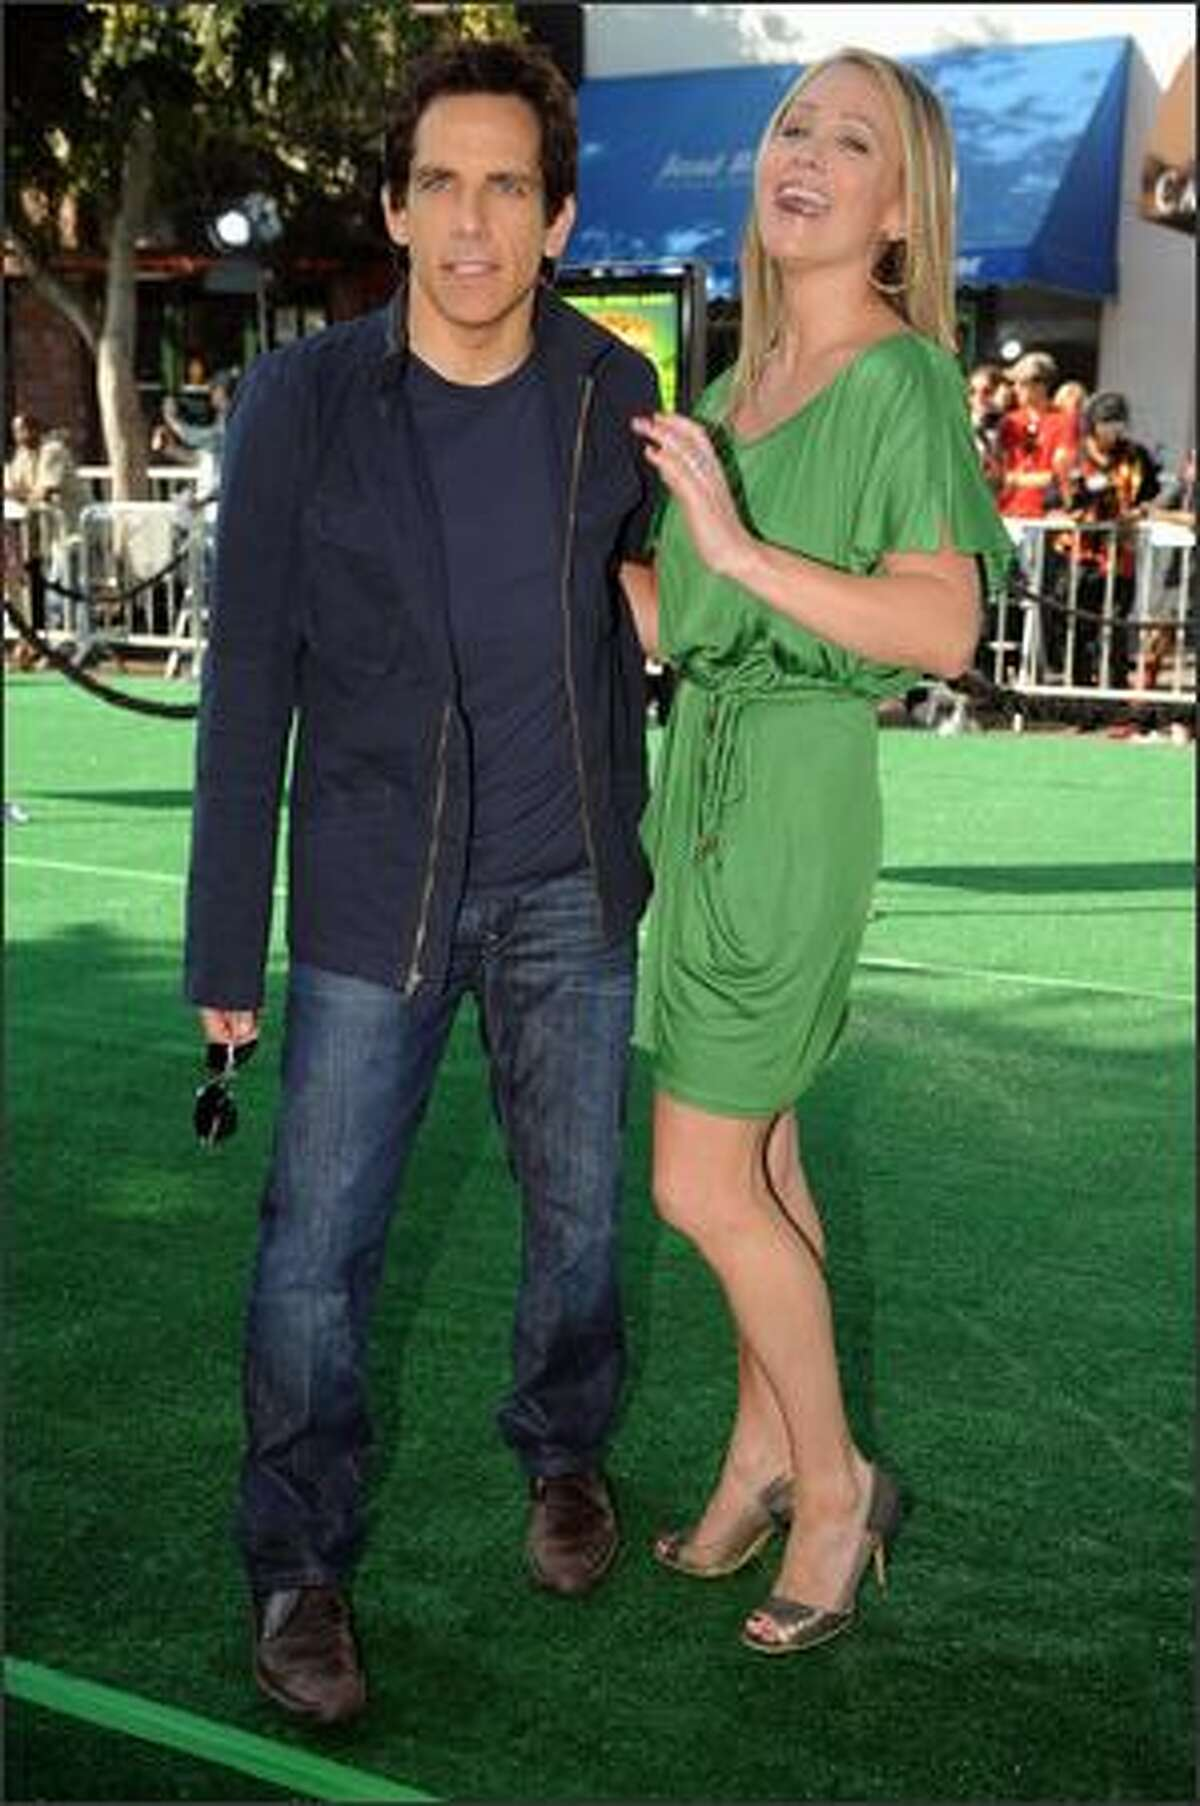 Actor Ben Stiller arrives with his wife, actress Christine Taylor, at the Los Angeles premiere of